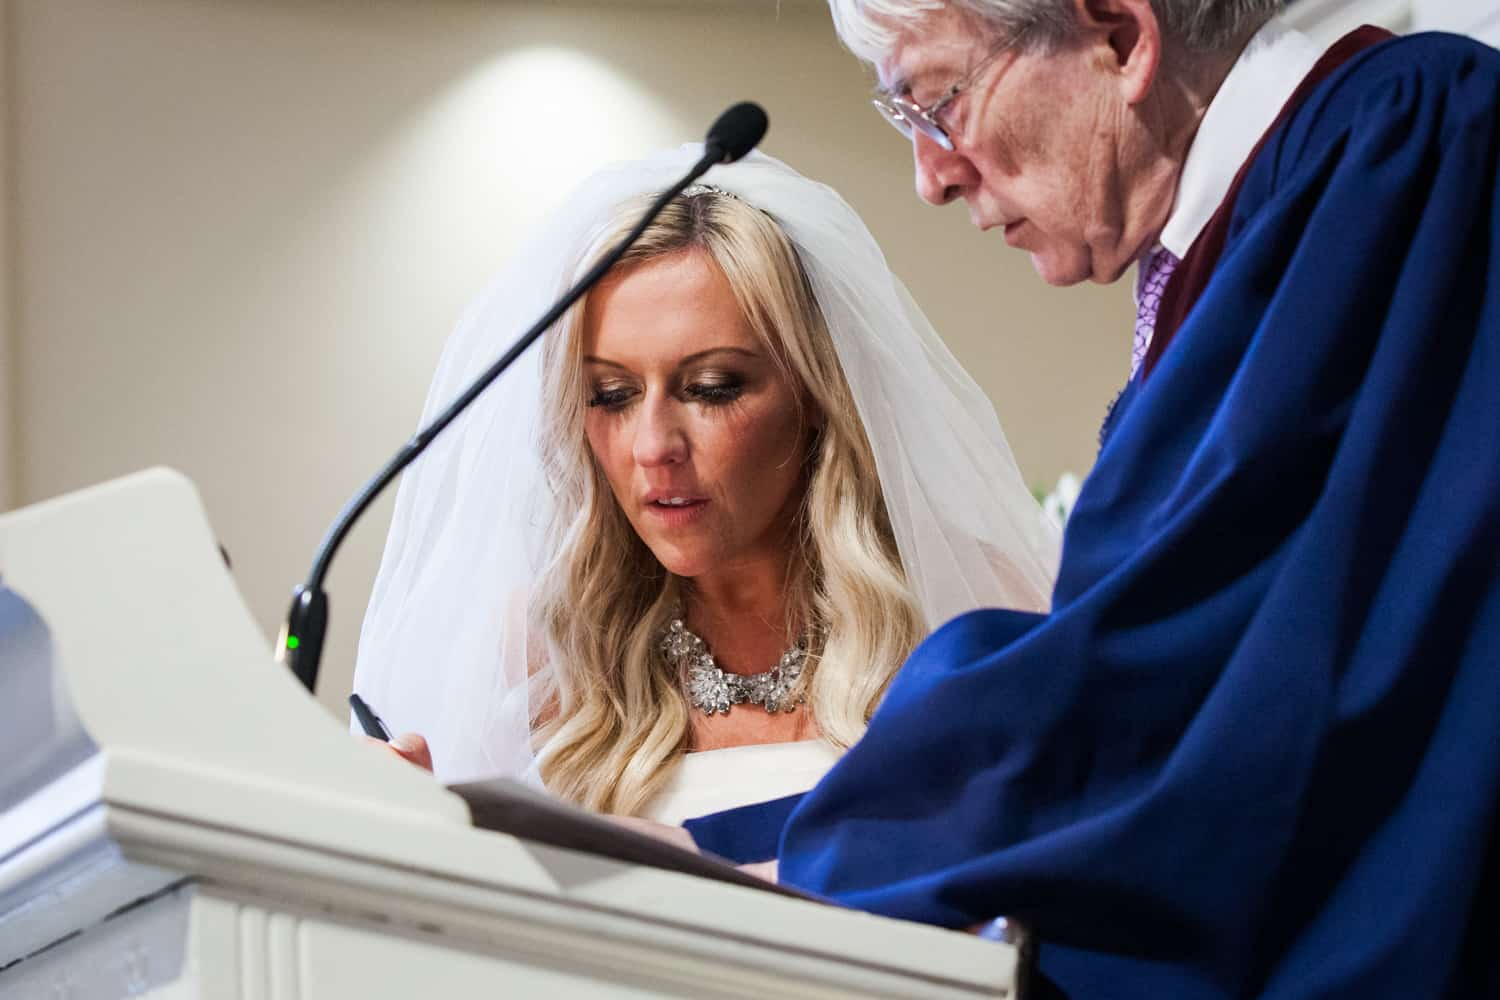 Bride signing marriage license with pastor